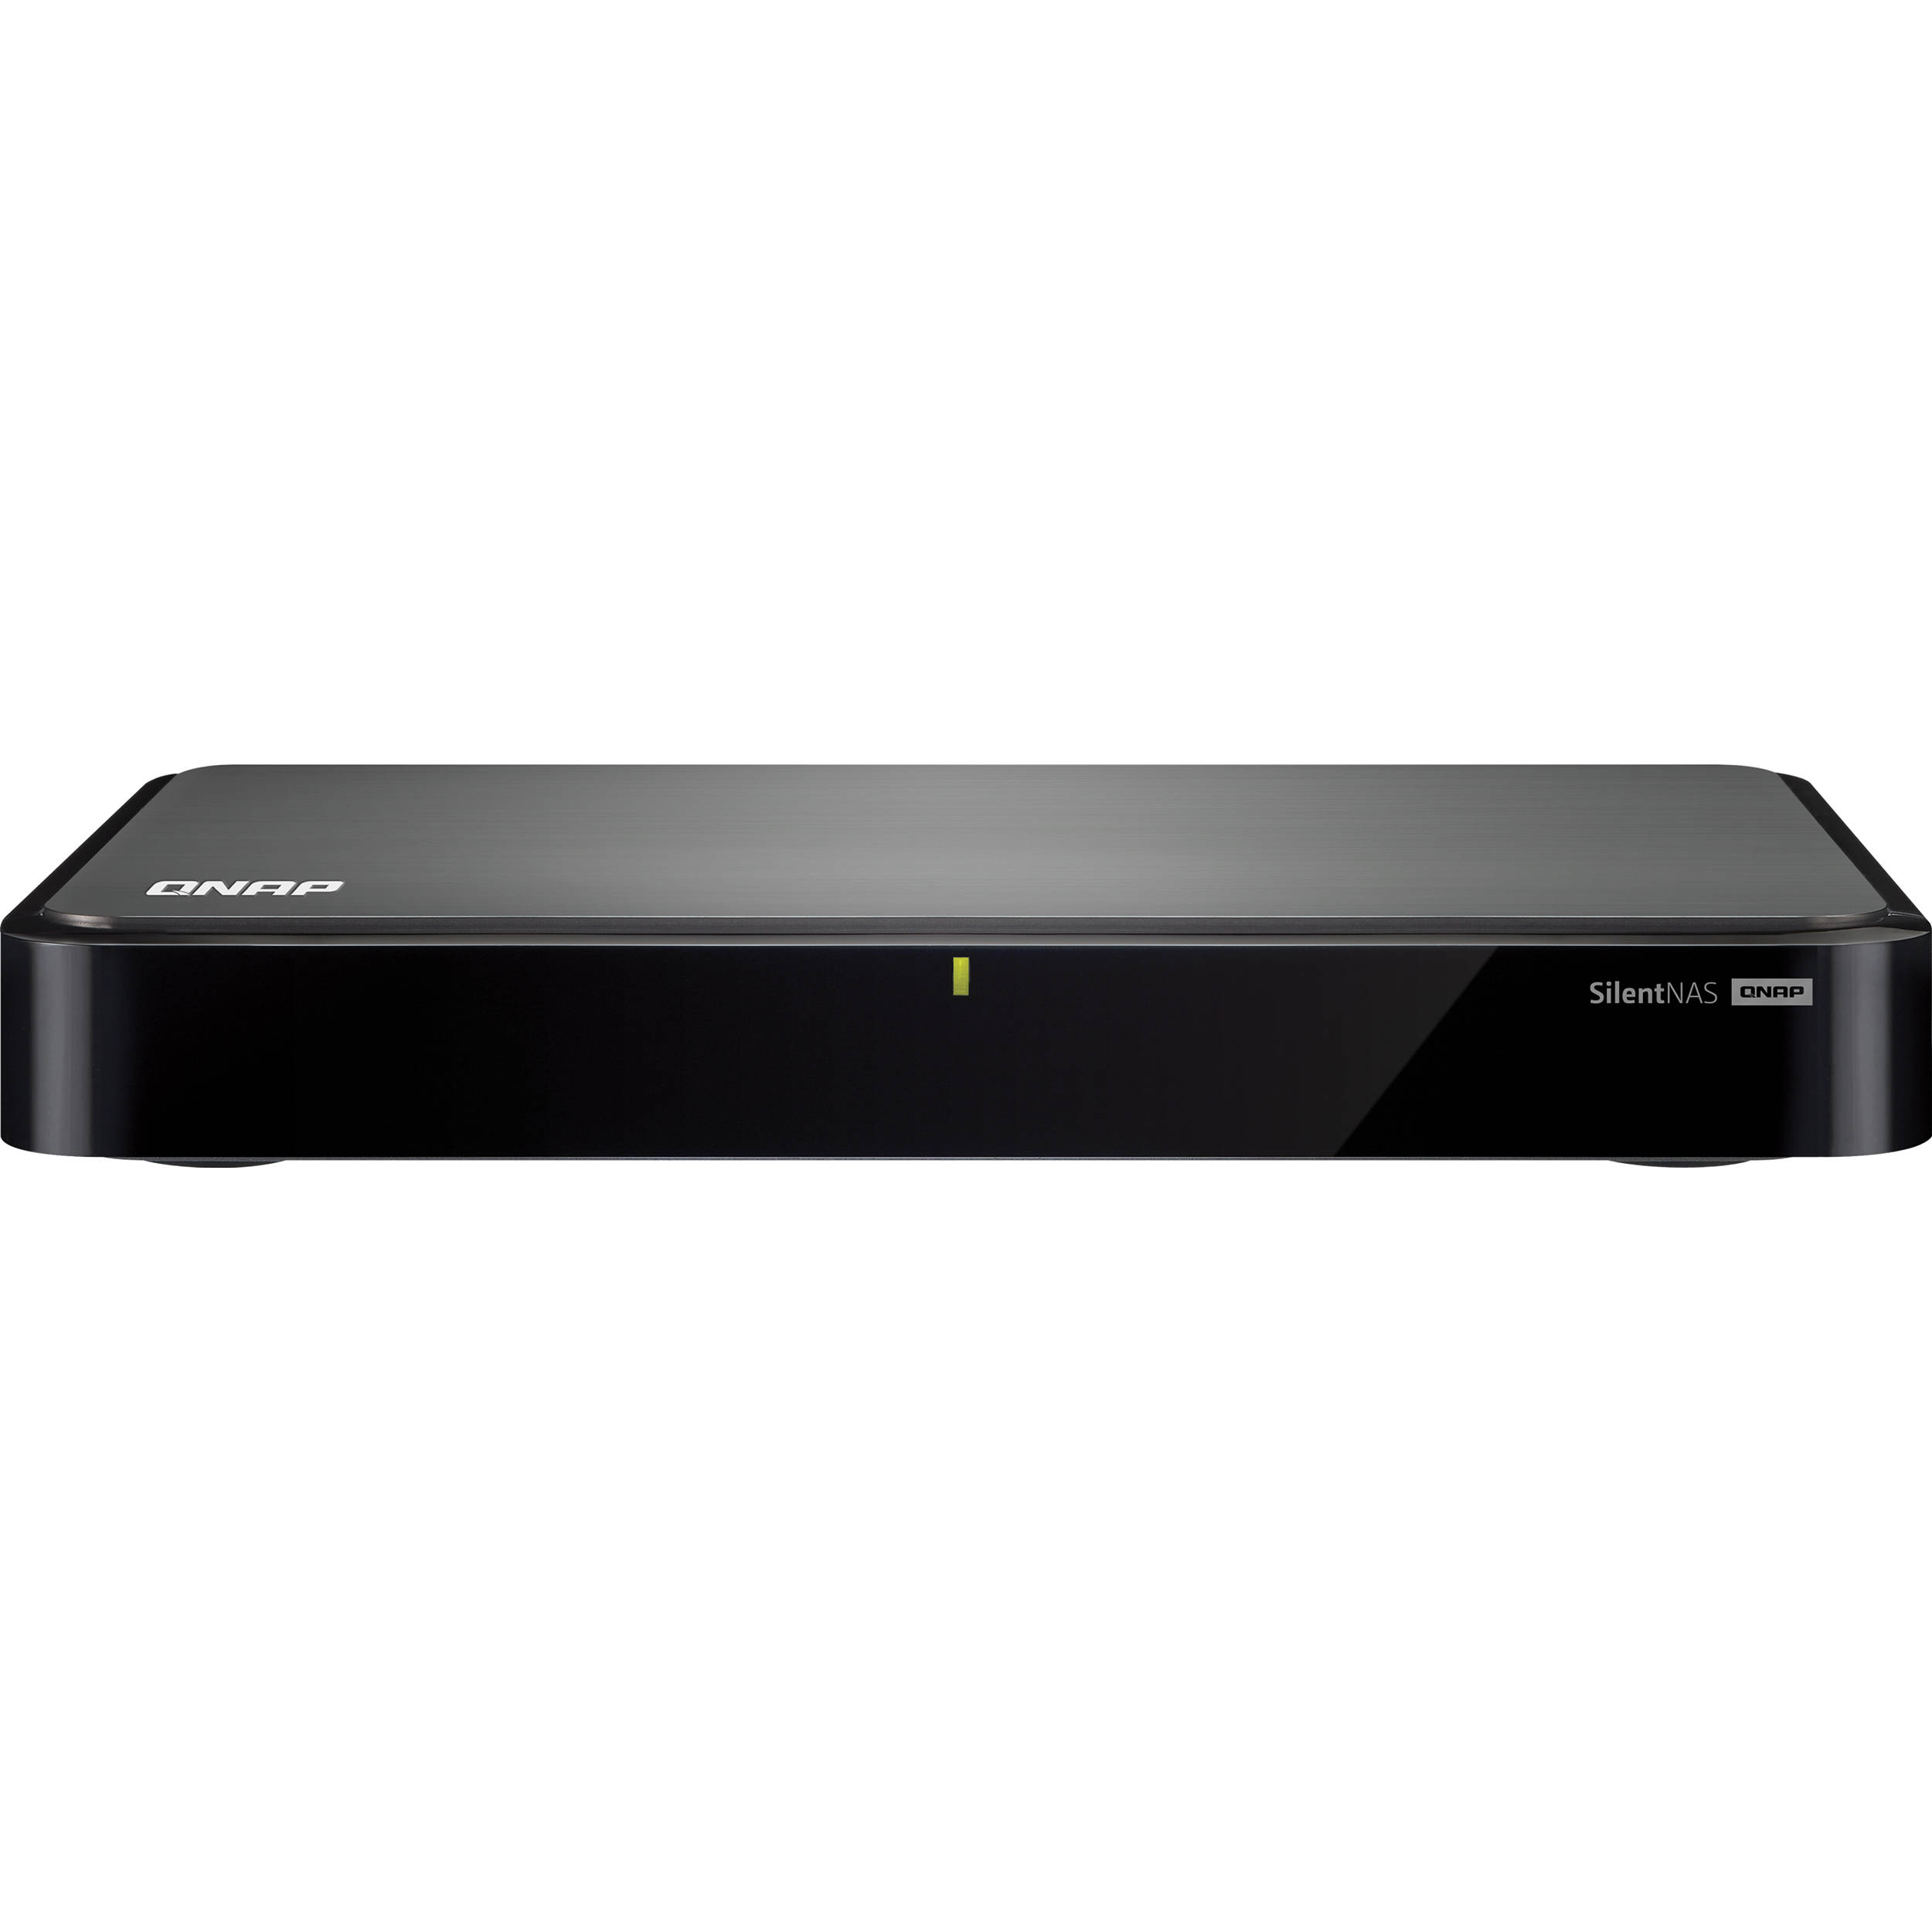 QNAP HS-251-2G 2-Bay Fanless Home and SOHO NAS HS-251-2G ...